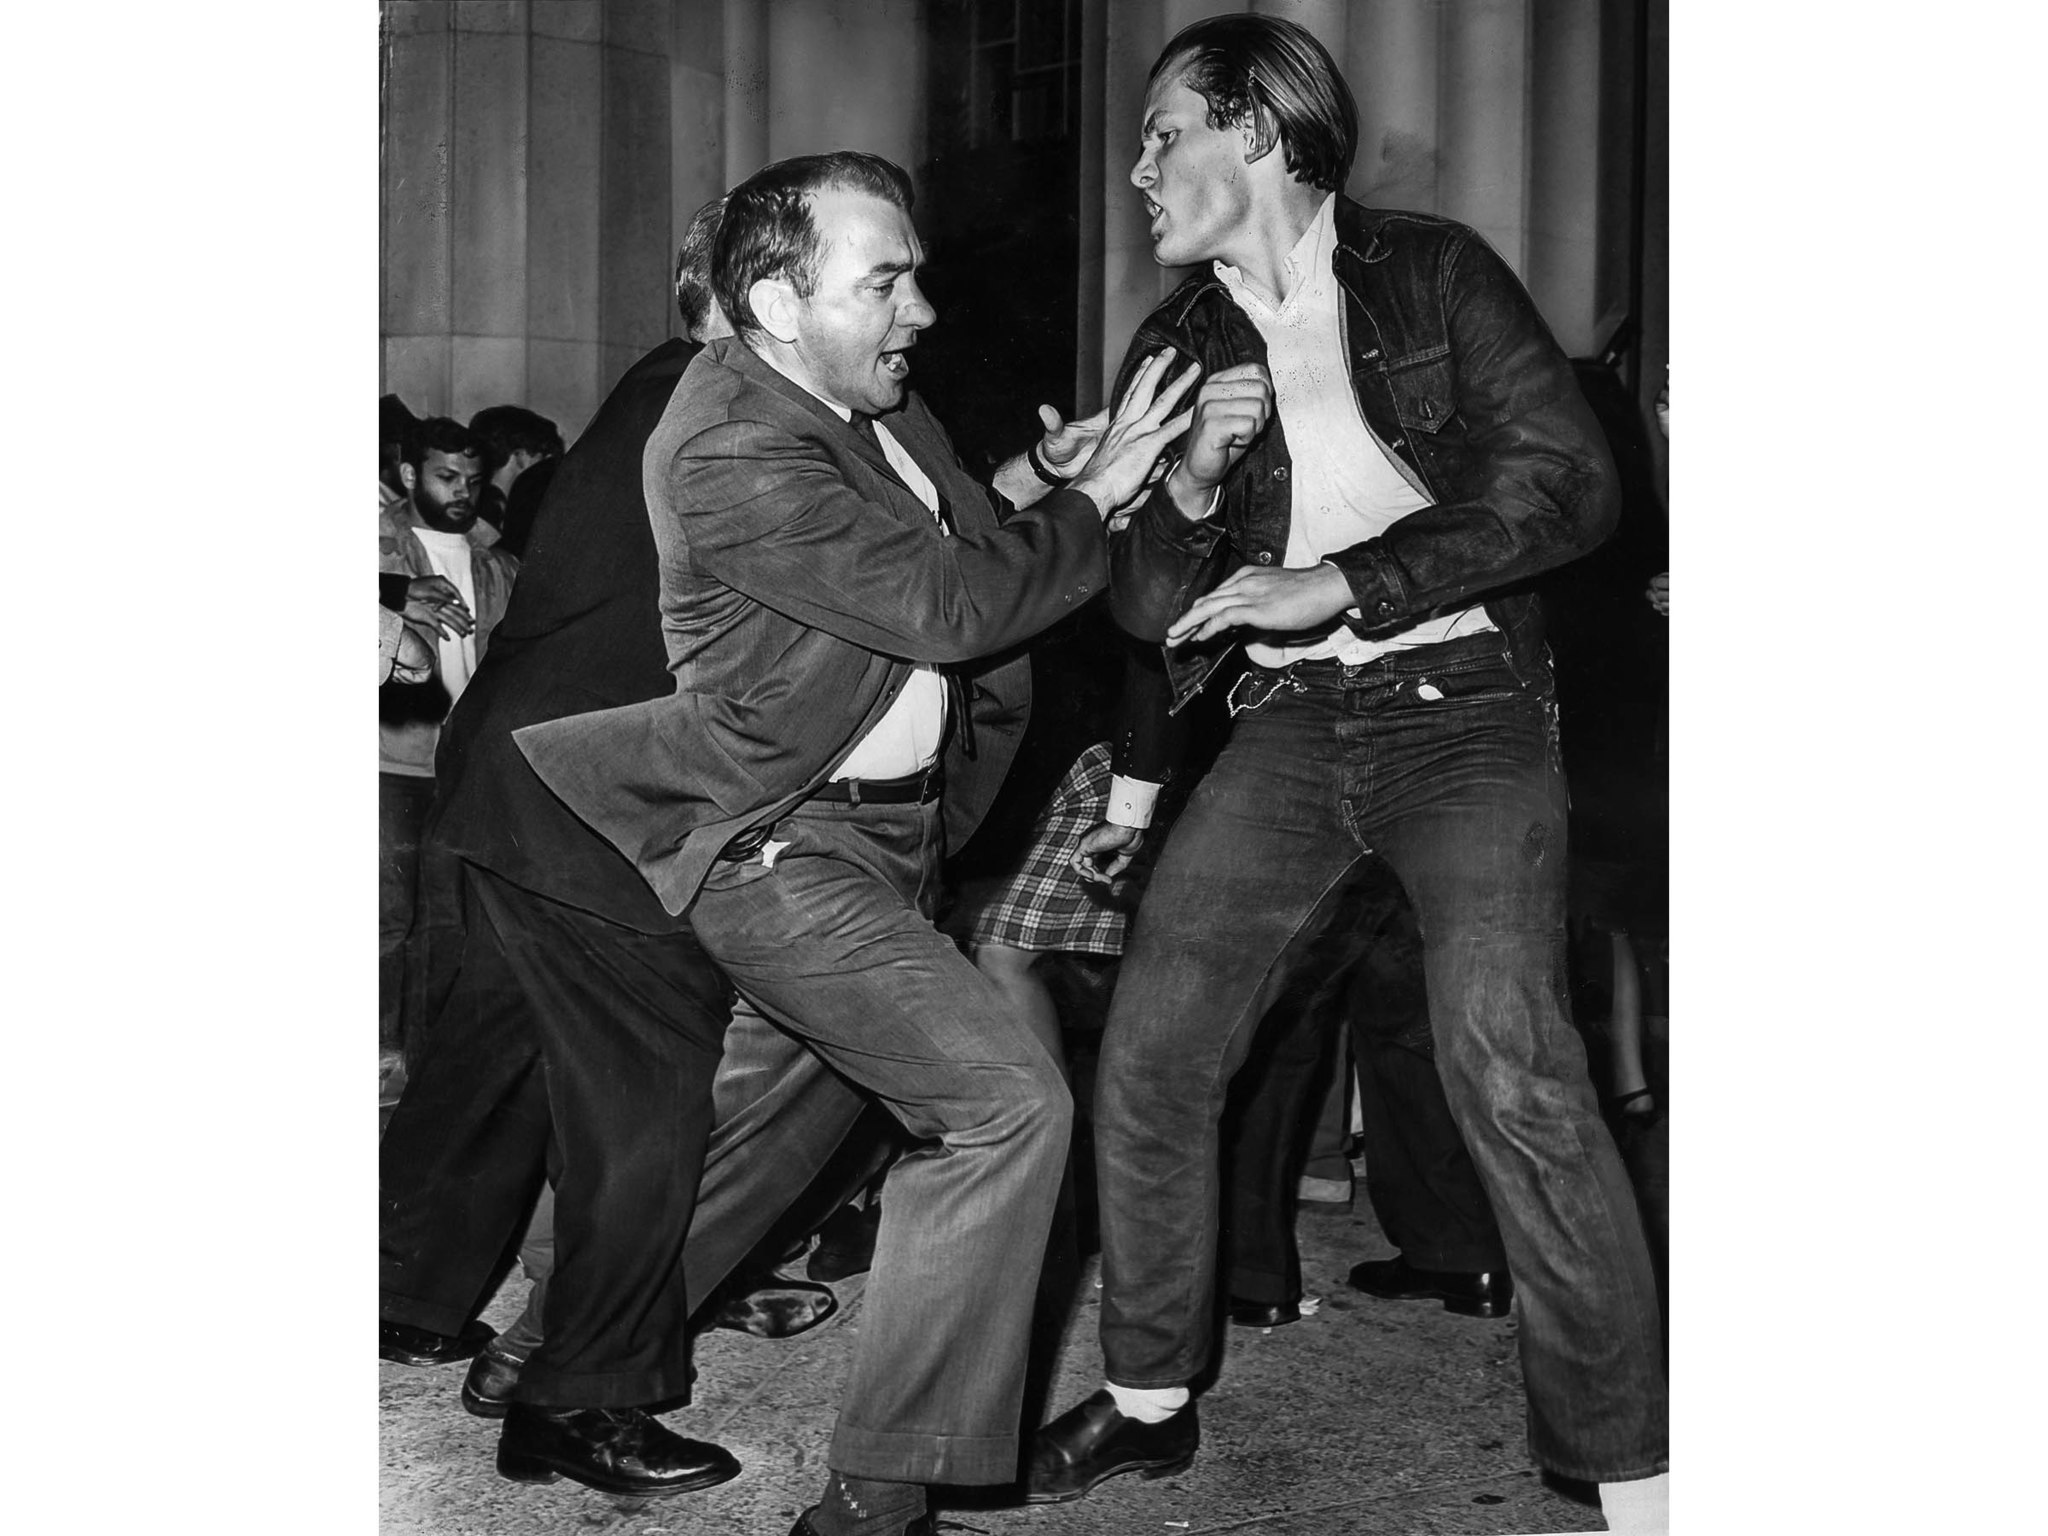 March 9, 1965: A deputy U.S. marshal, left, struggles with a civil rights demonstrator during a melee